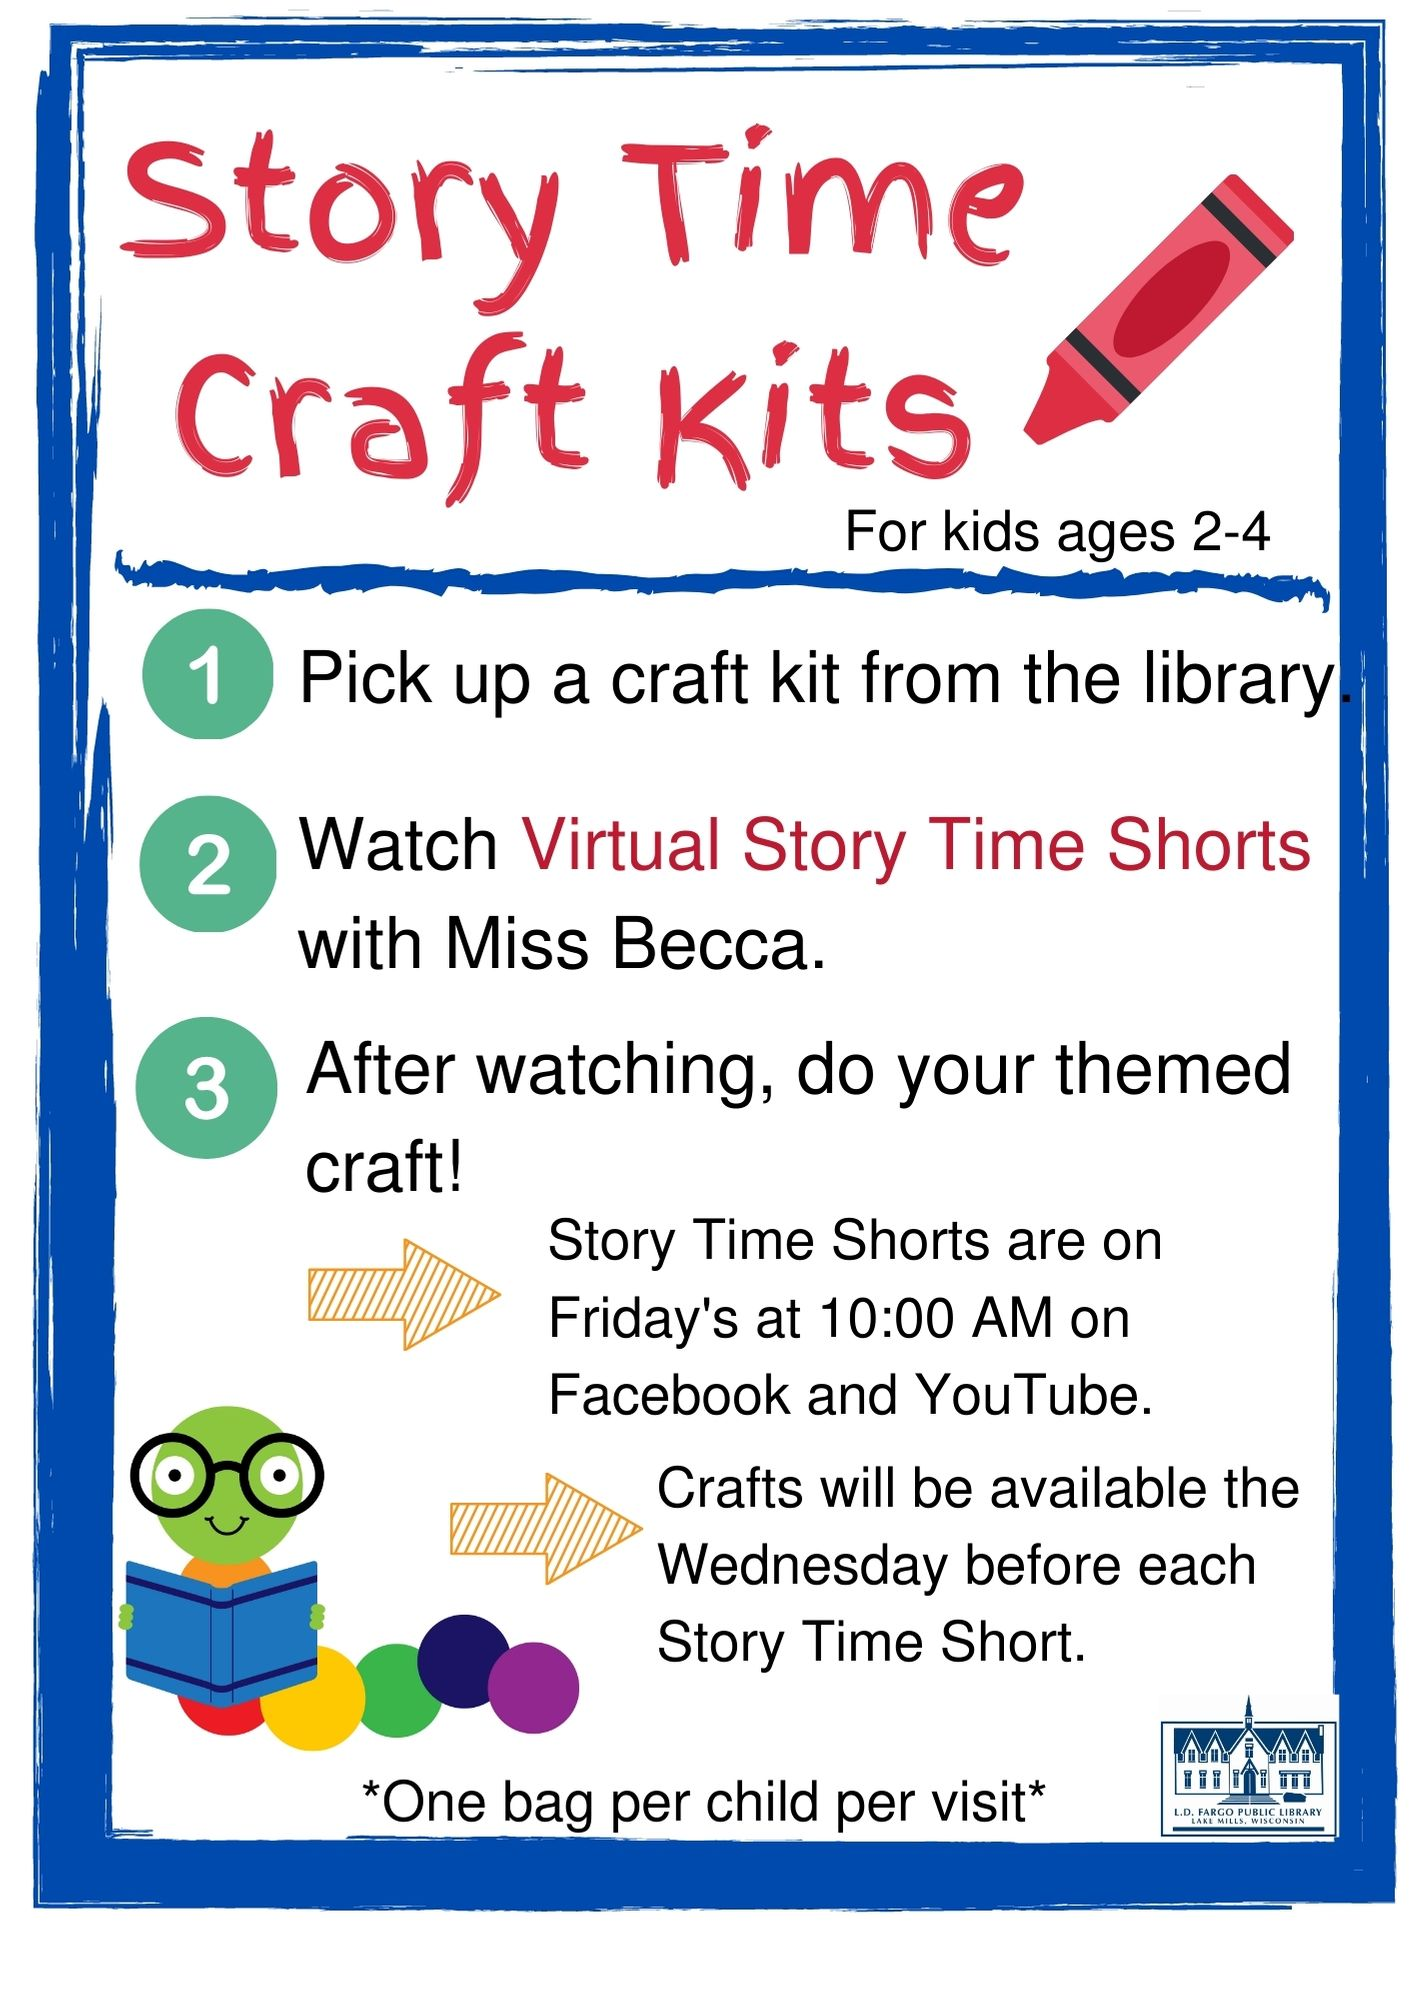 Story Time Craft Kits.  For kids ages 2-4.  Pick up a Craft Kit from the Library. Watch Virtual STory Time Shorts with Miss Becca. Do your themed craft. Story Time Shorts are on Friday's at 10:00 AM on Facebook and YouTube. Crafts will be available the Wednesday before each Story Time Short. *One bag per child per visit*